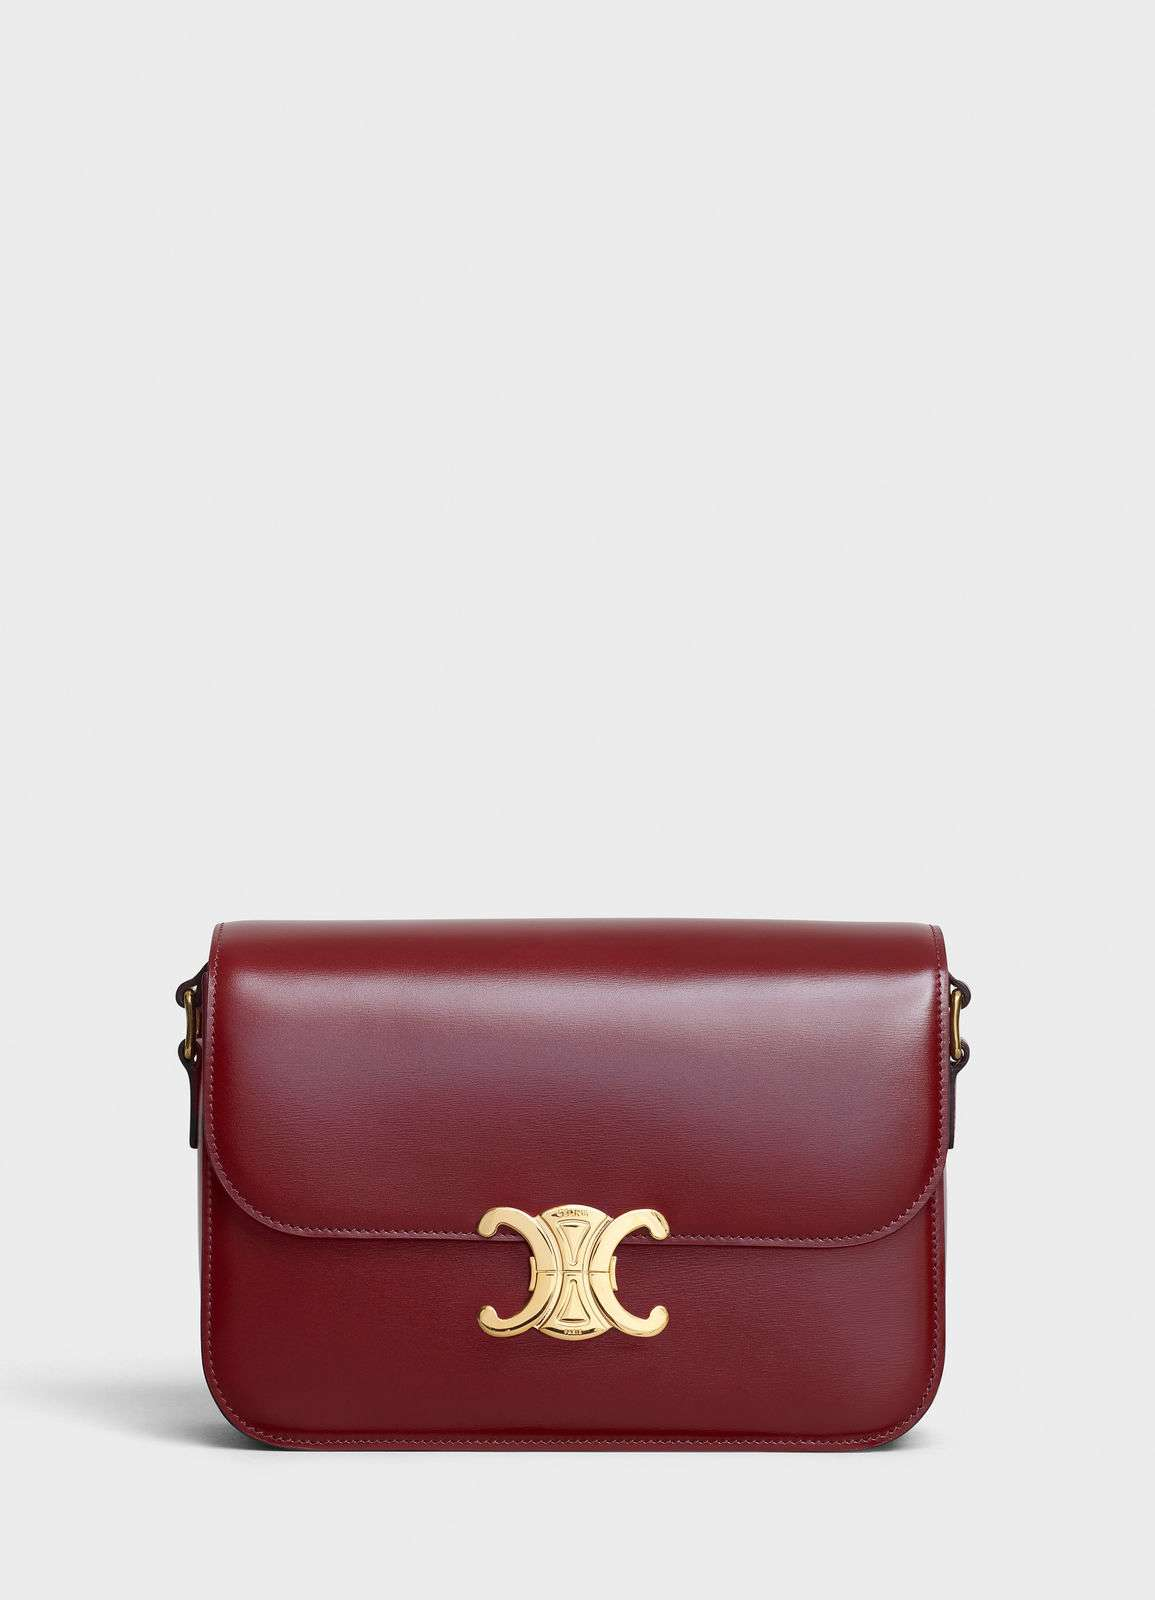 CELINE MEDIUM TRIOMPHE BAG IN SHINY CALFSKIN CL87363 LIGHT BURGUNDY